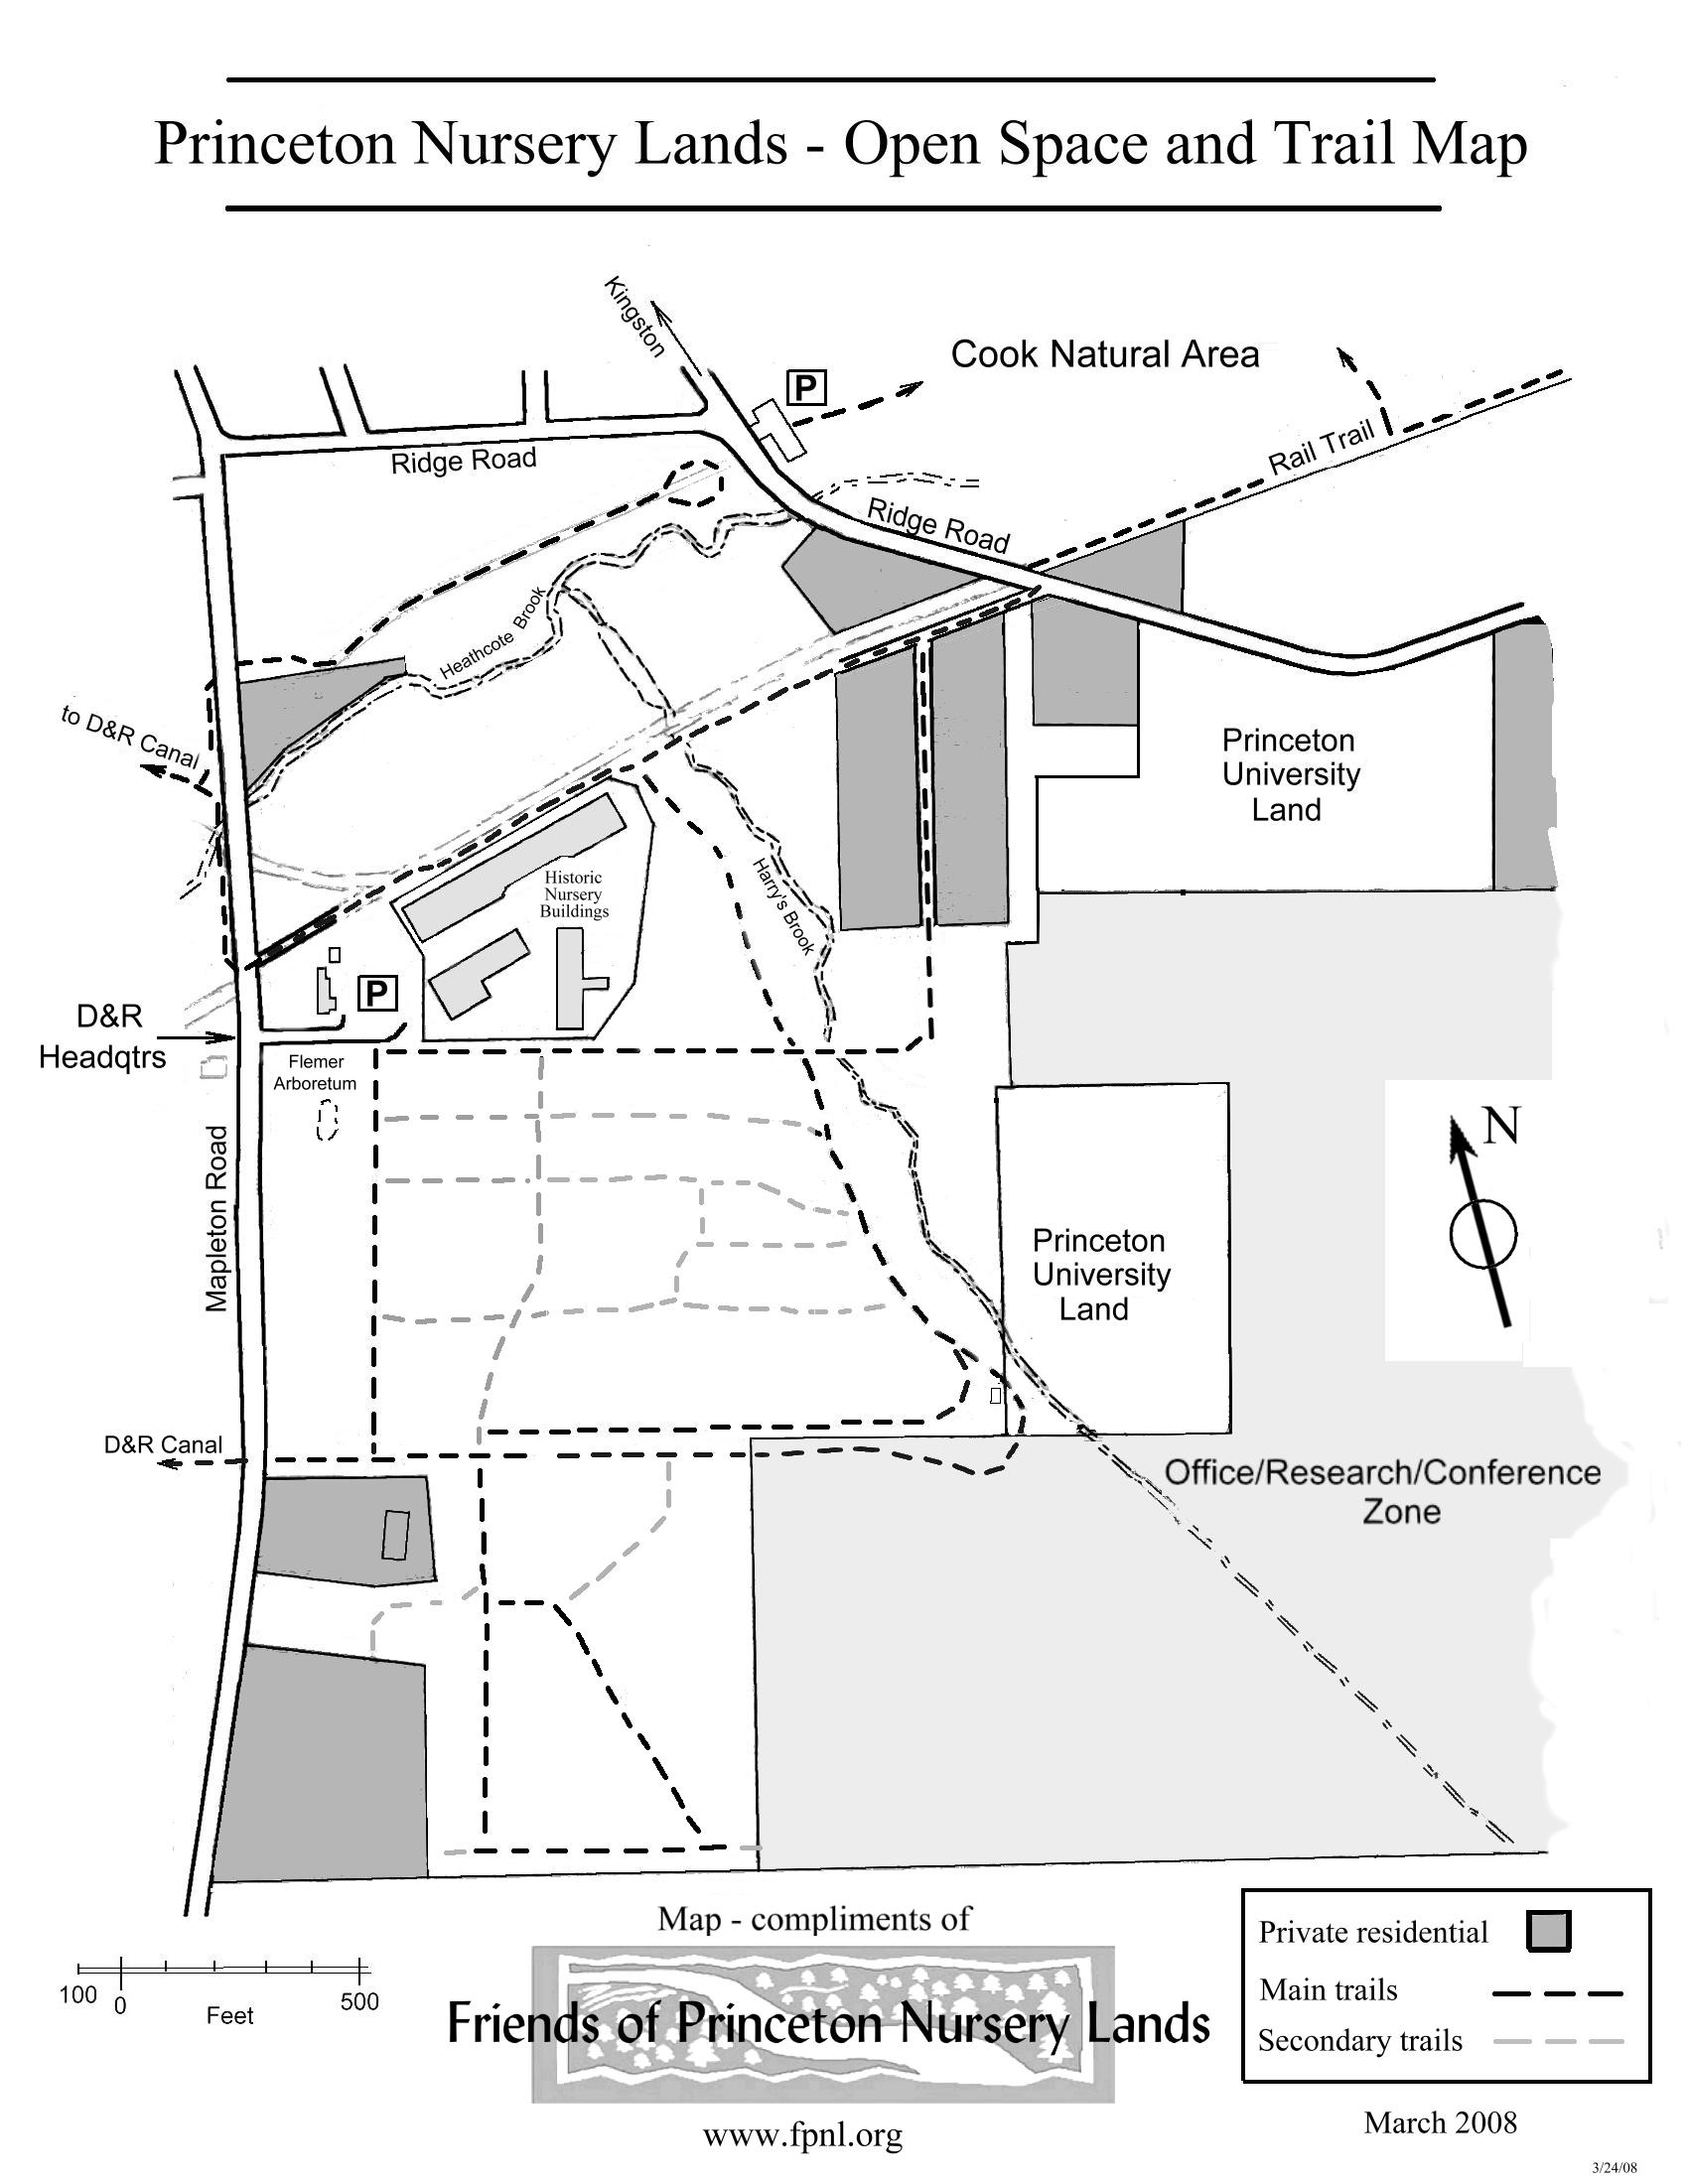 New Open E And Trail Map Of The Princeton Nursery Lands